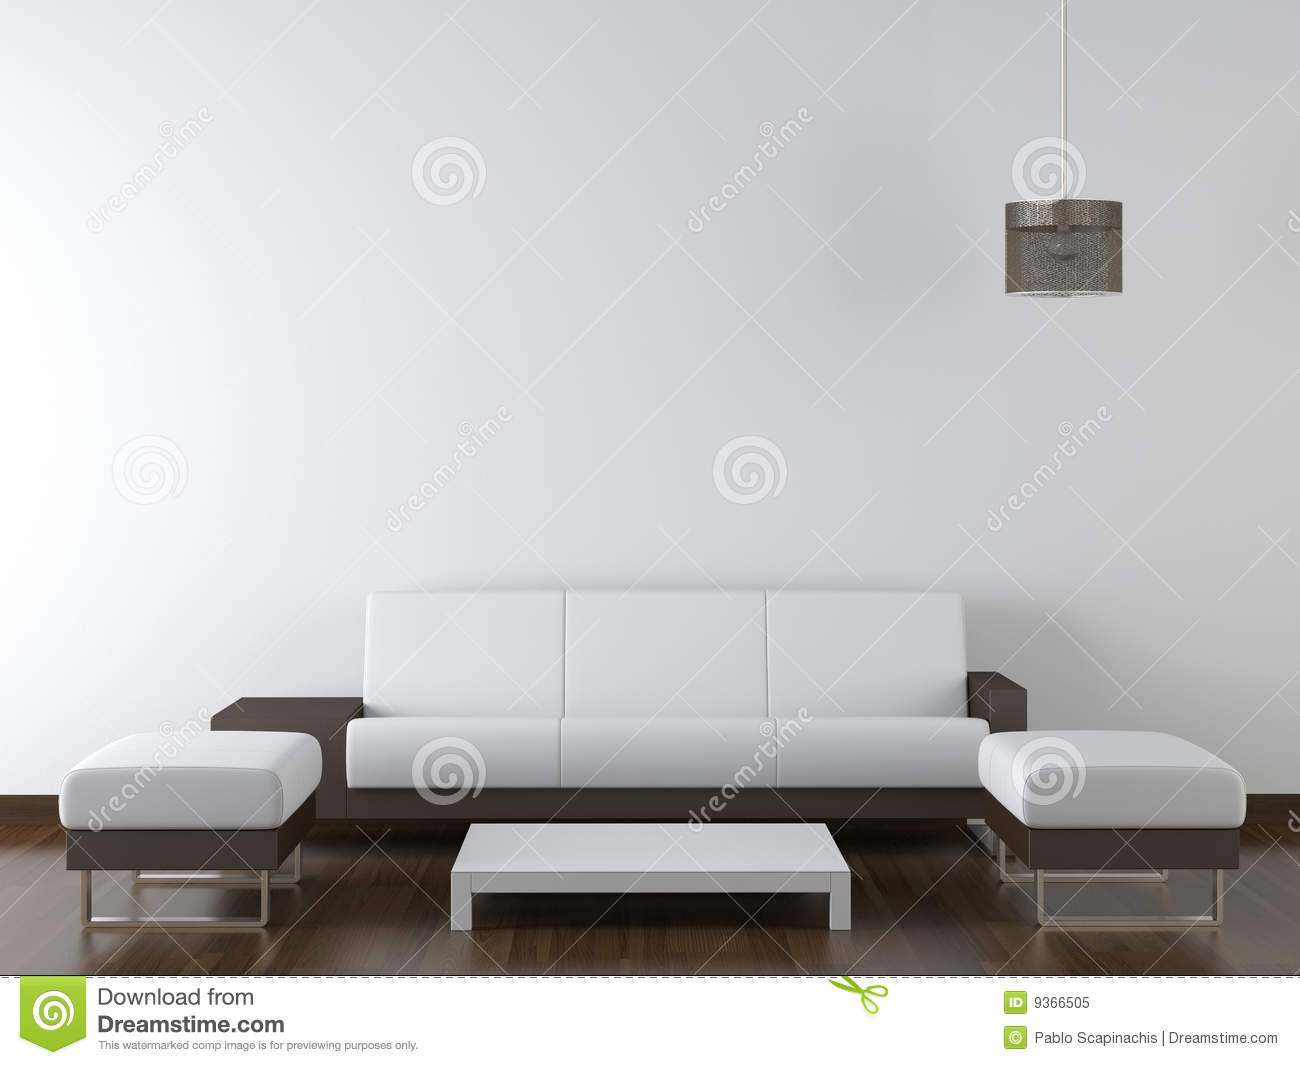 Wall Modern Design wall modern design 160 decor designs in wall modern design Copy Design